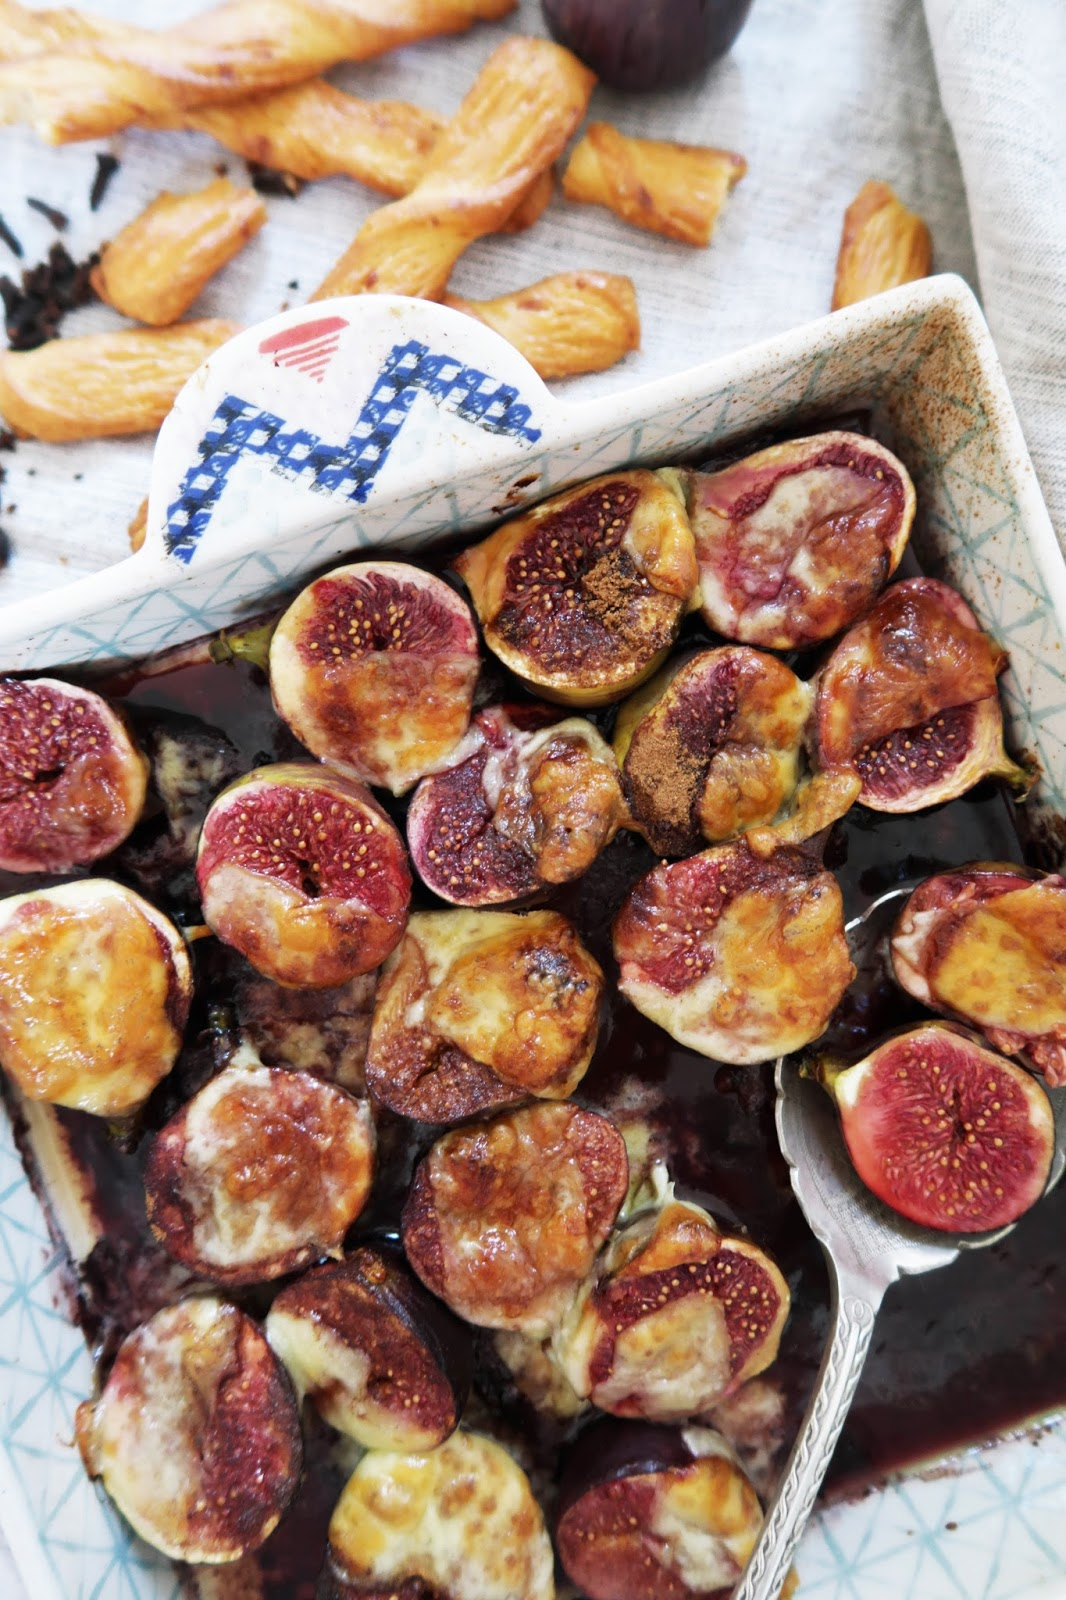 Baked figs on red wine & cheddar recipe